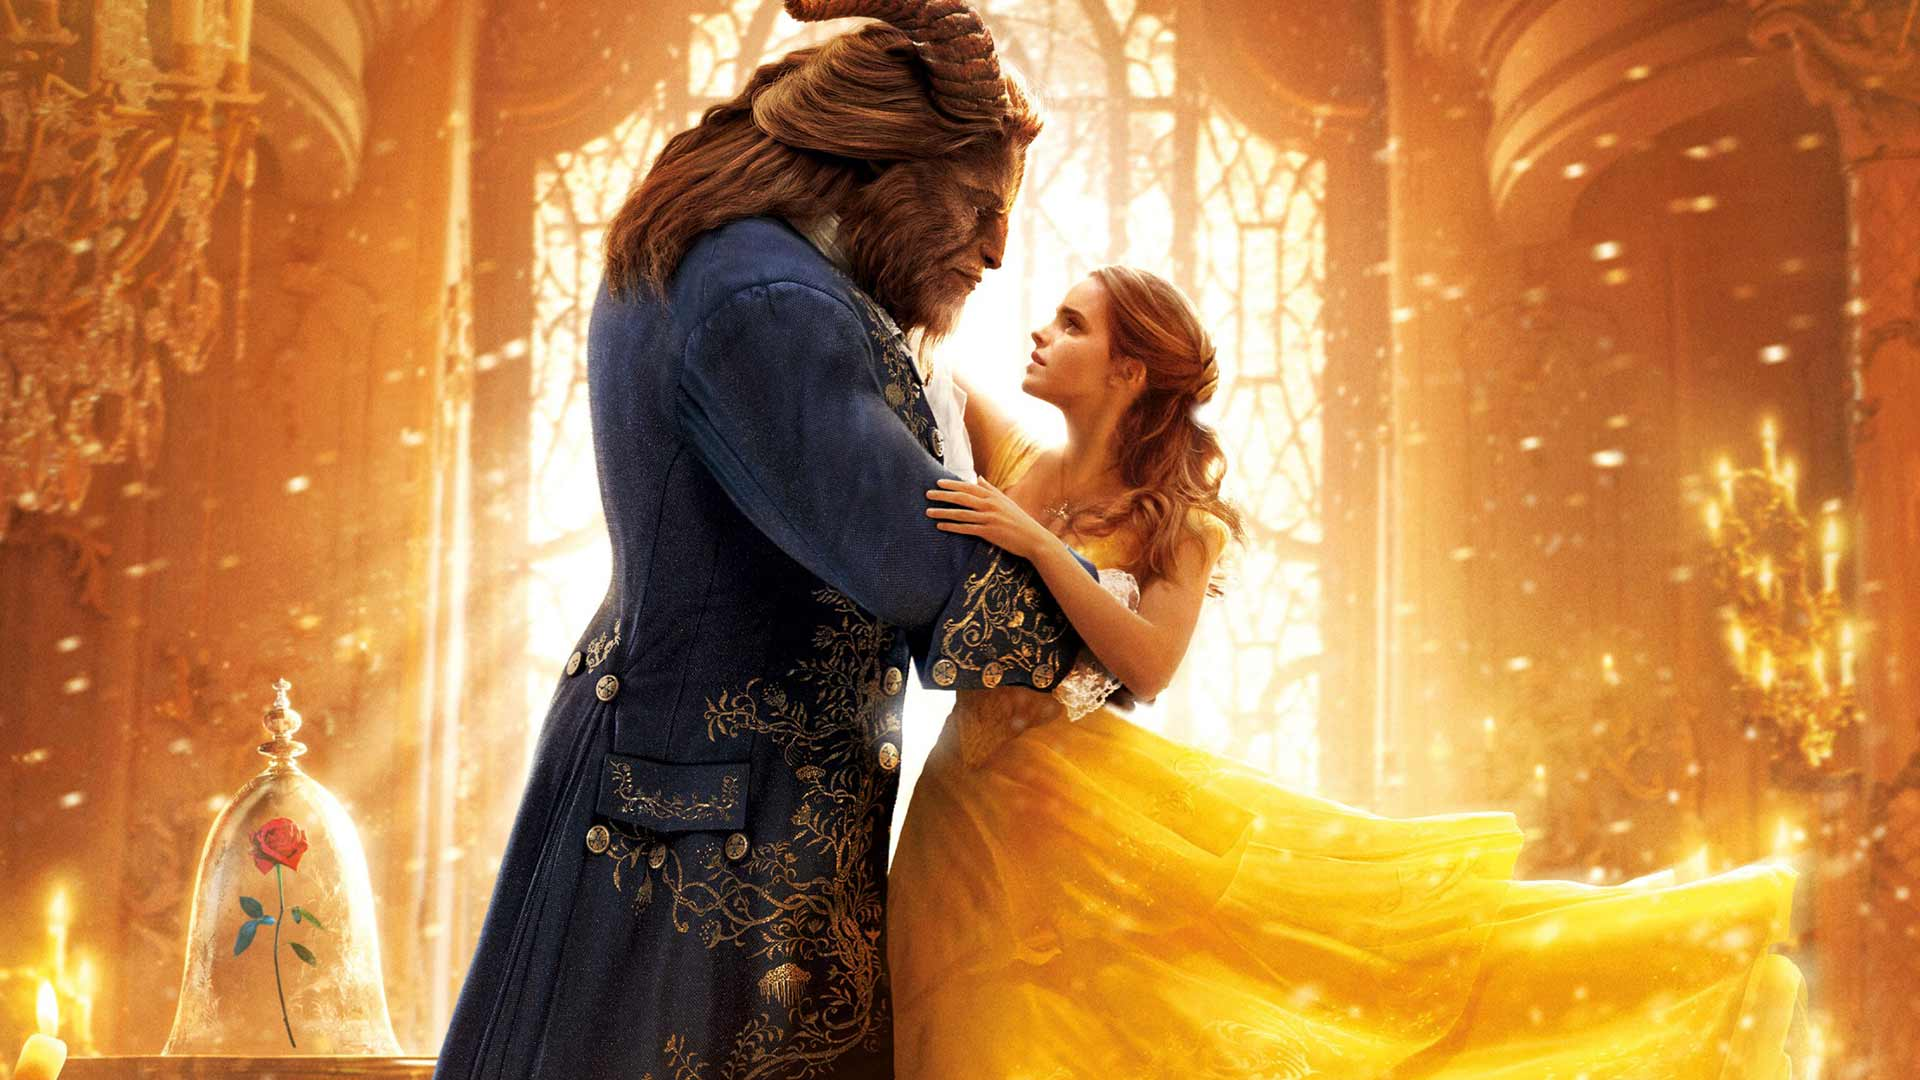 it's here, it's here, beauty and the beast on dvd today june 6,2017